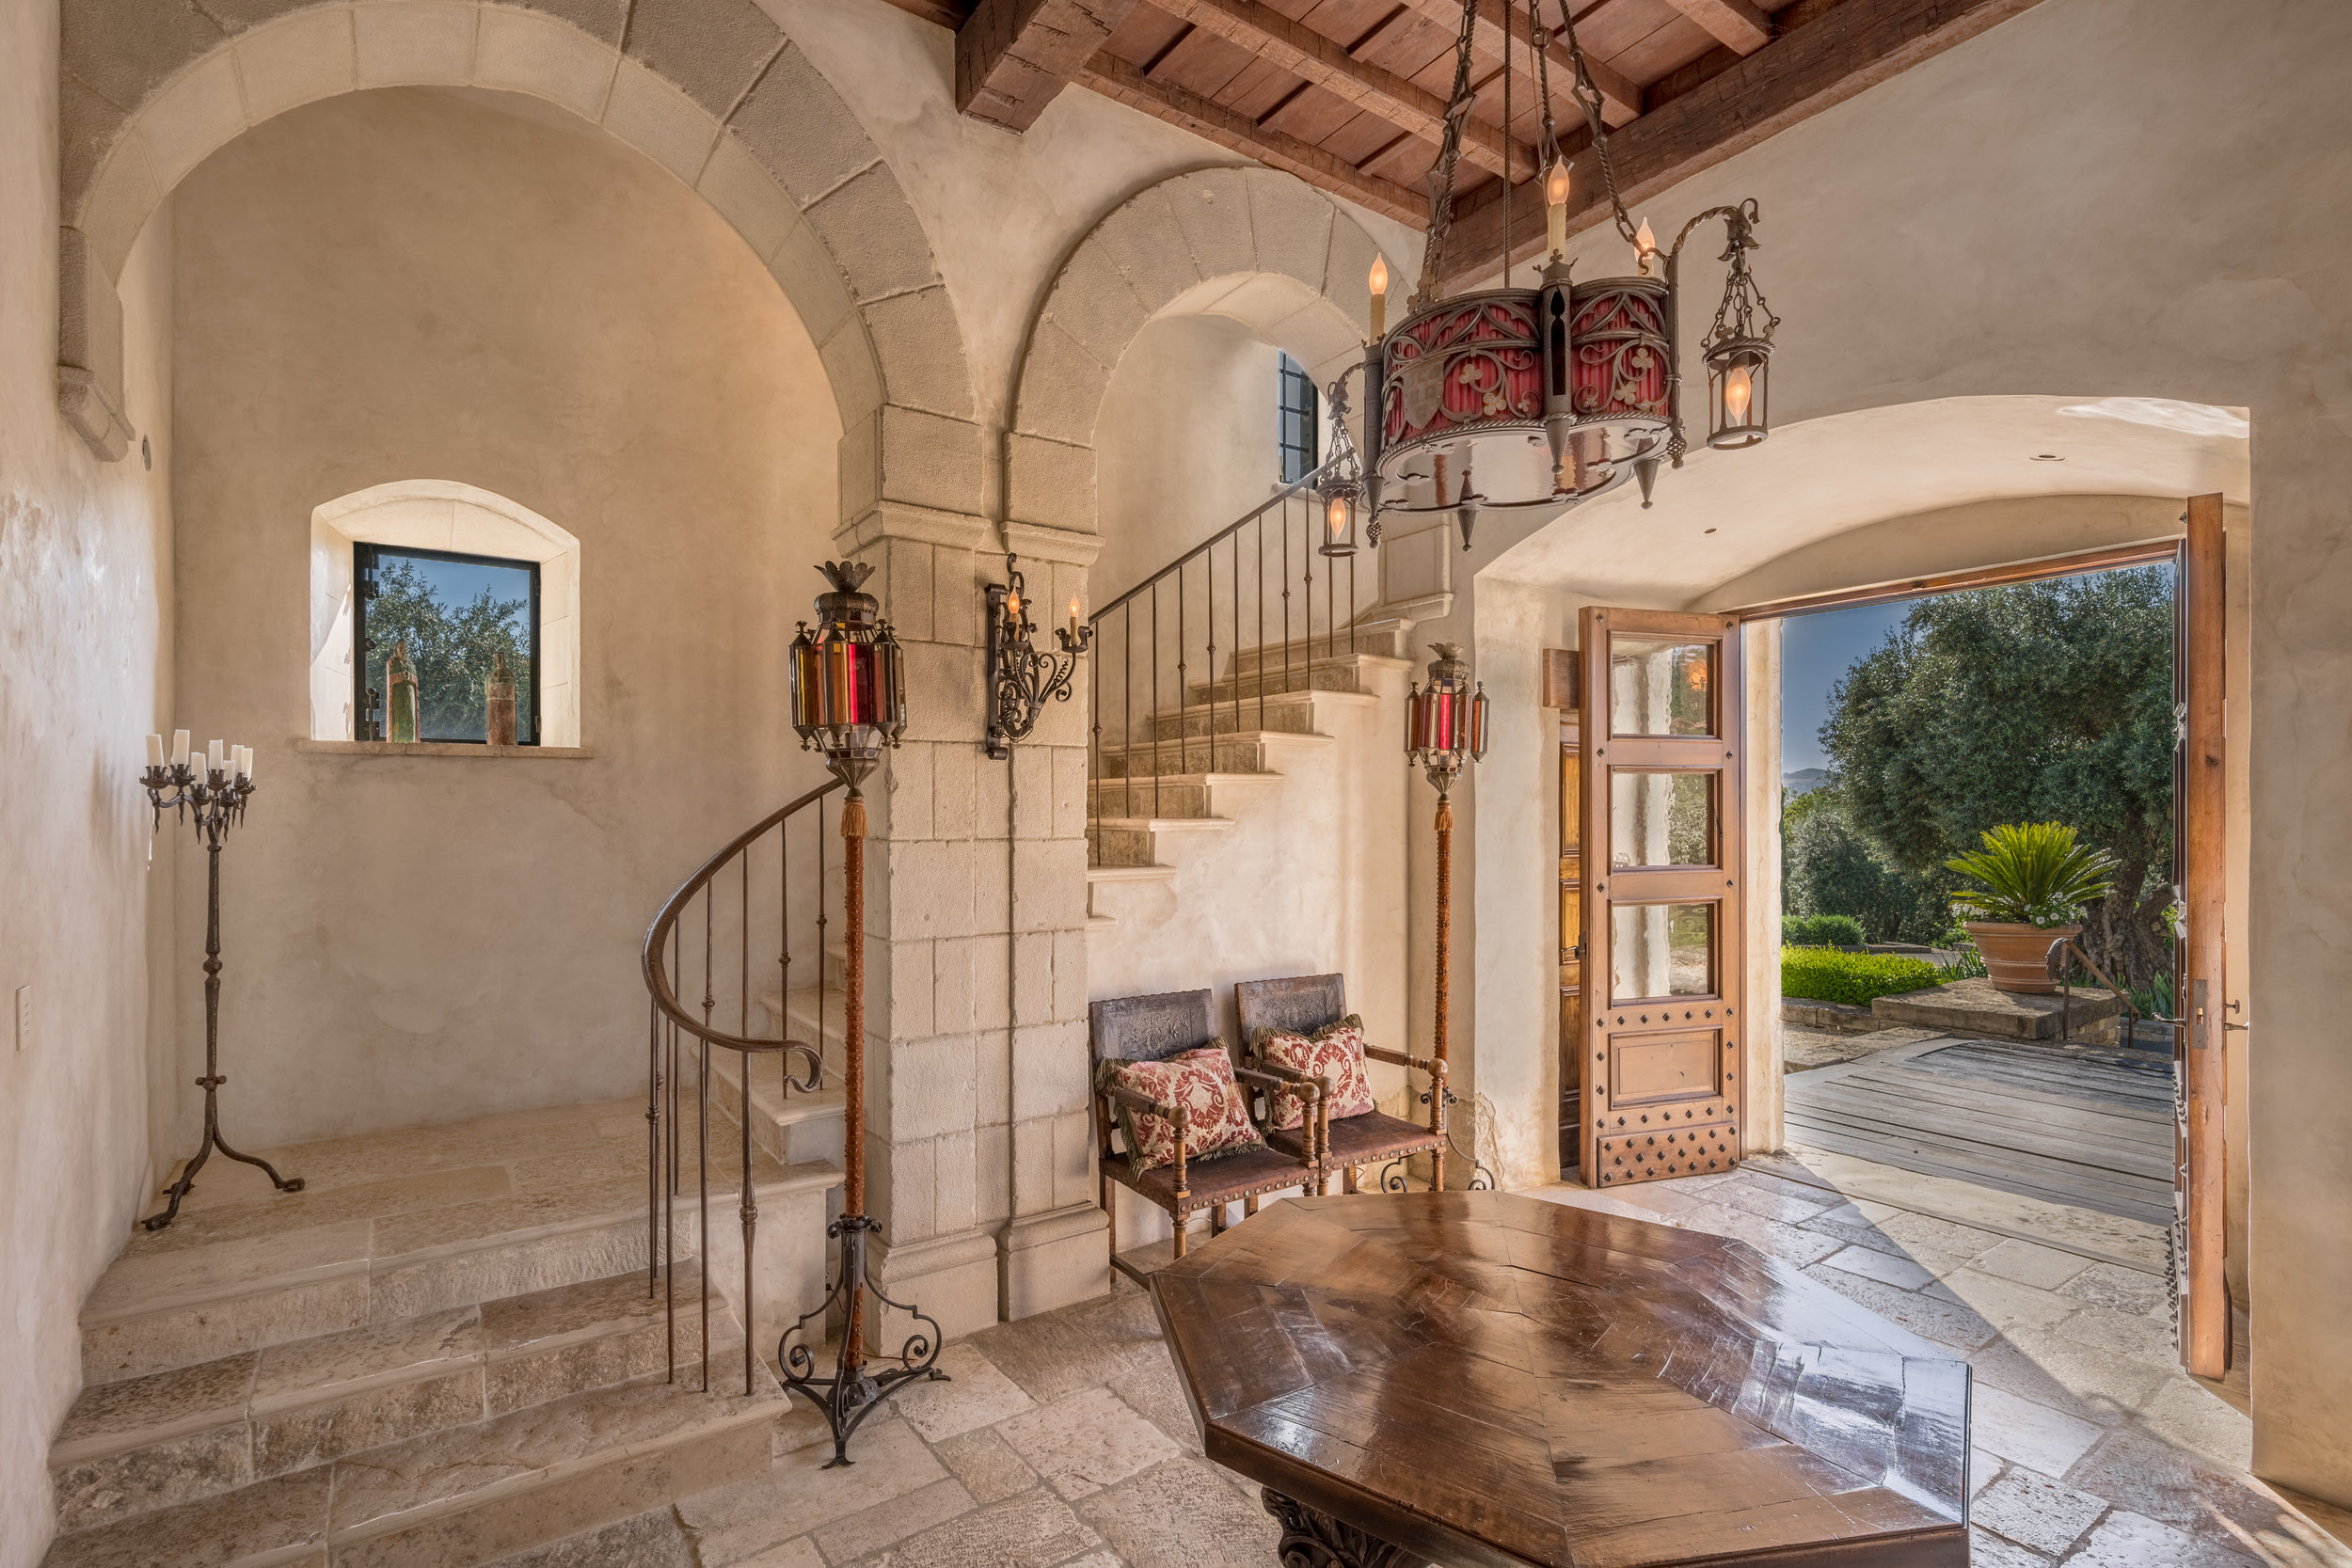 Stunning entrance to the Villa. Every detail has been handcrafted.